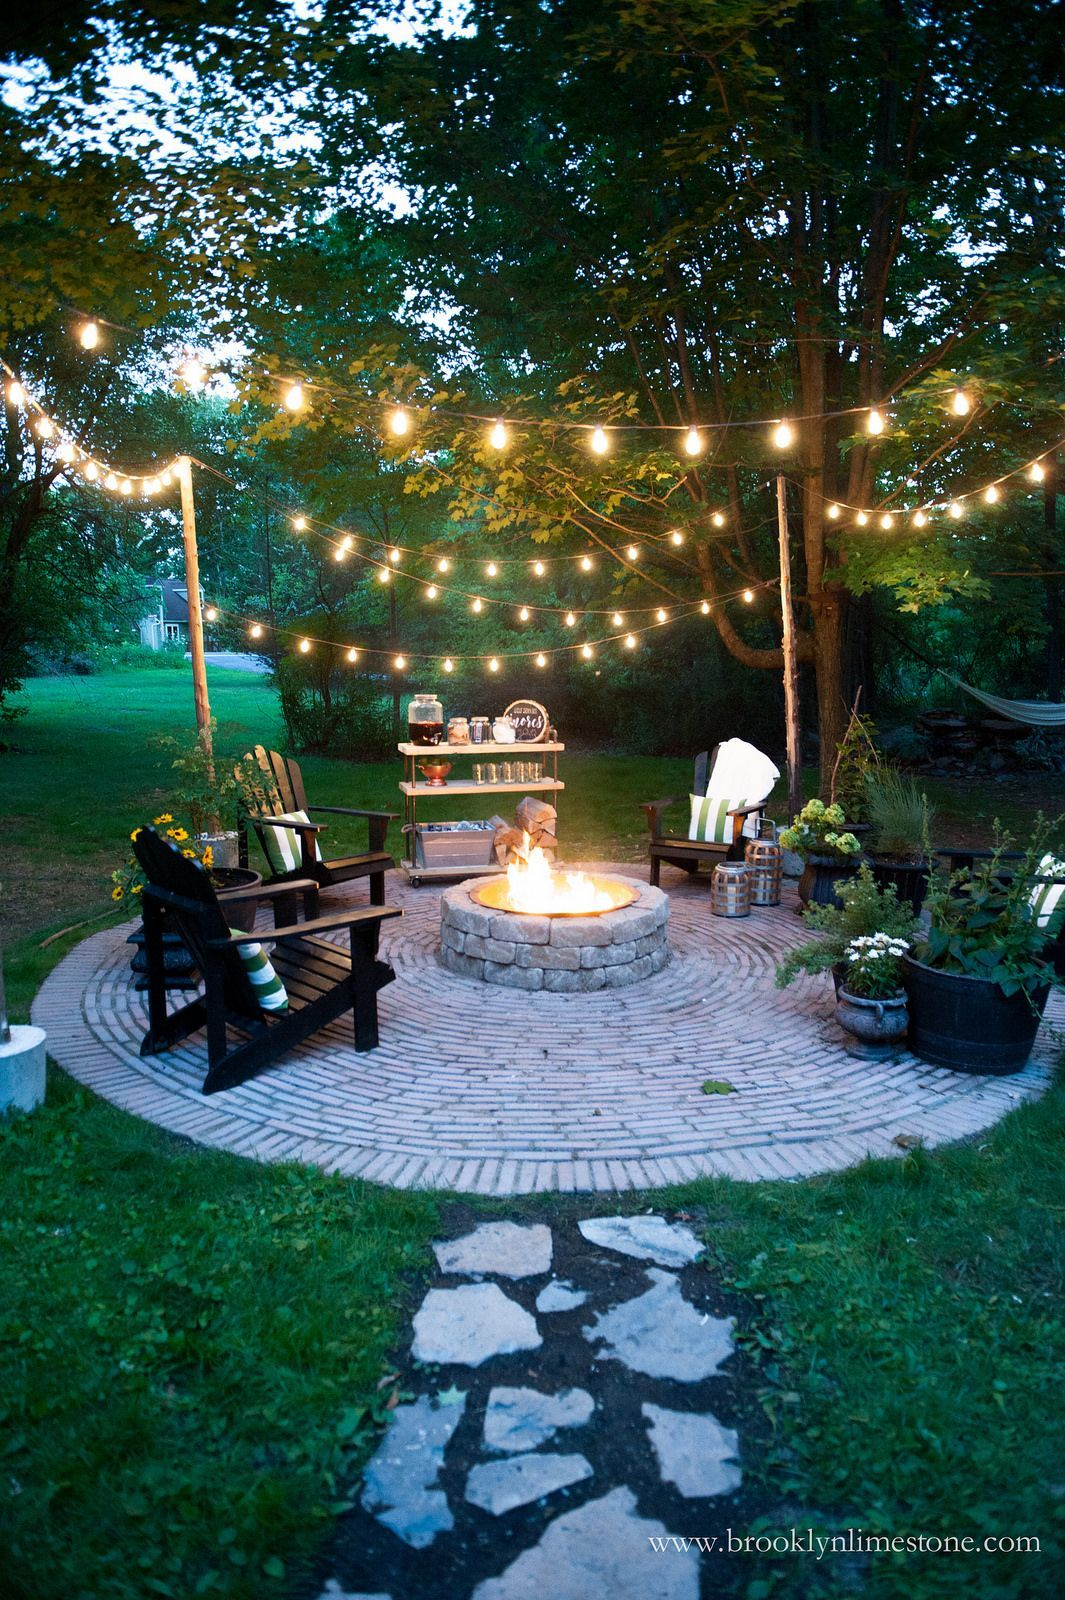 Firepit Patio Country Cottage Diy Circular Outdoor Entertaining Space Backyard Entertaining Space Backyard Layout Backyard Entertaining